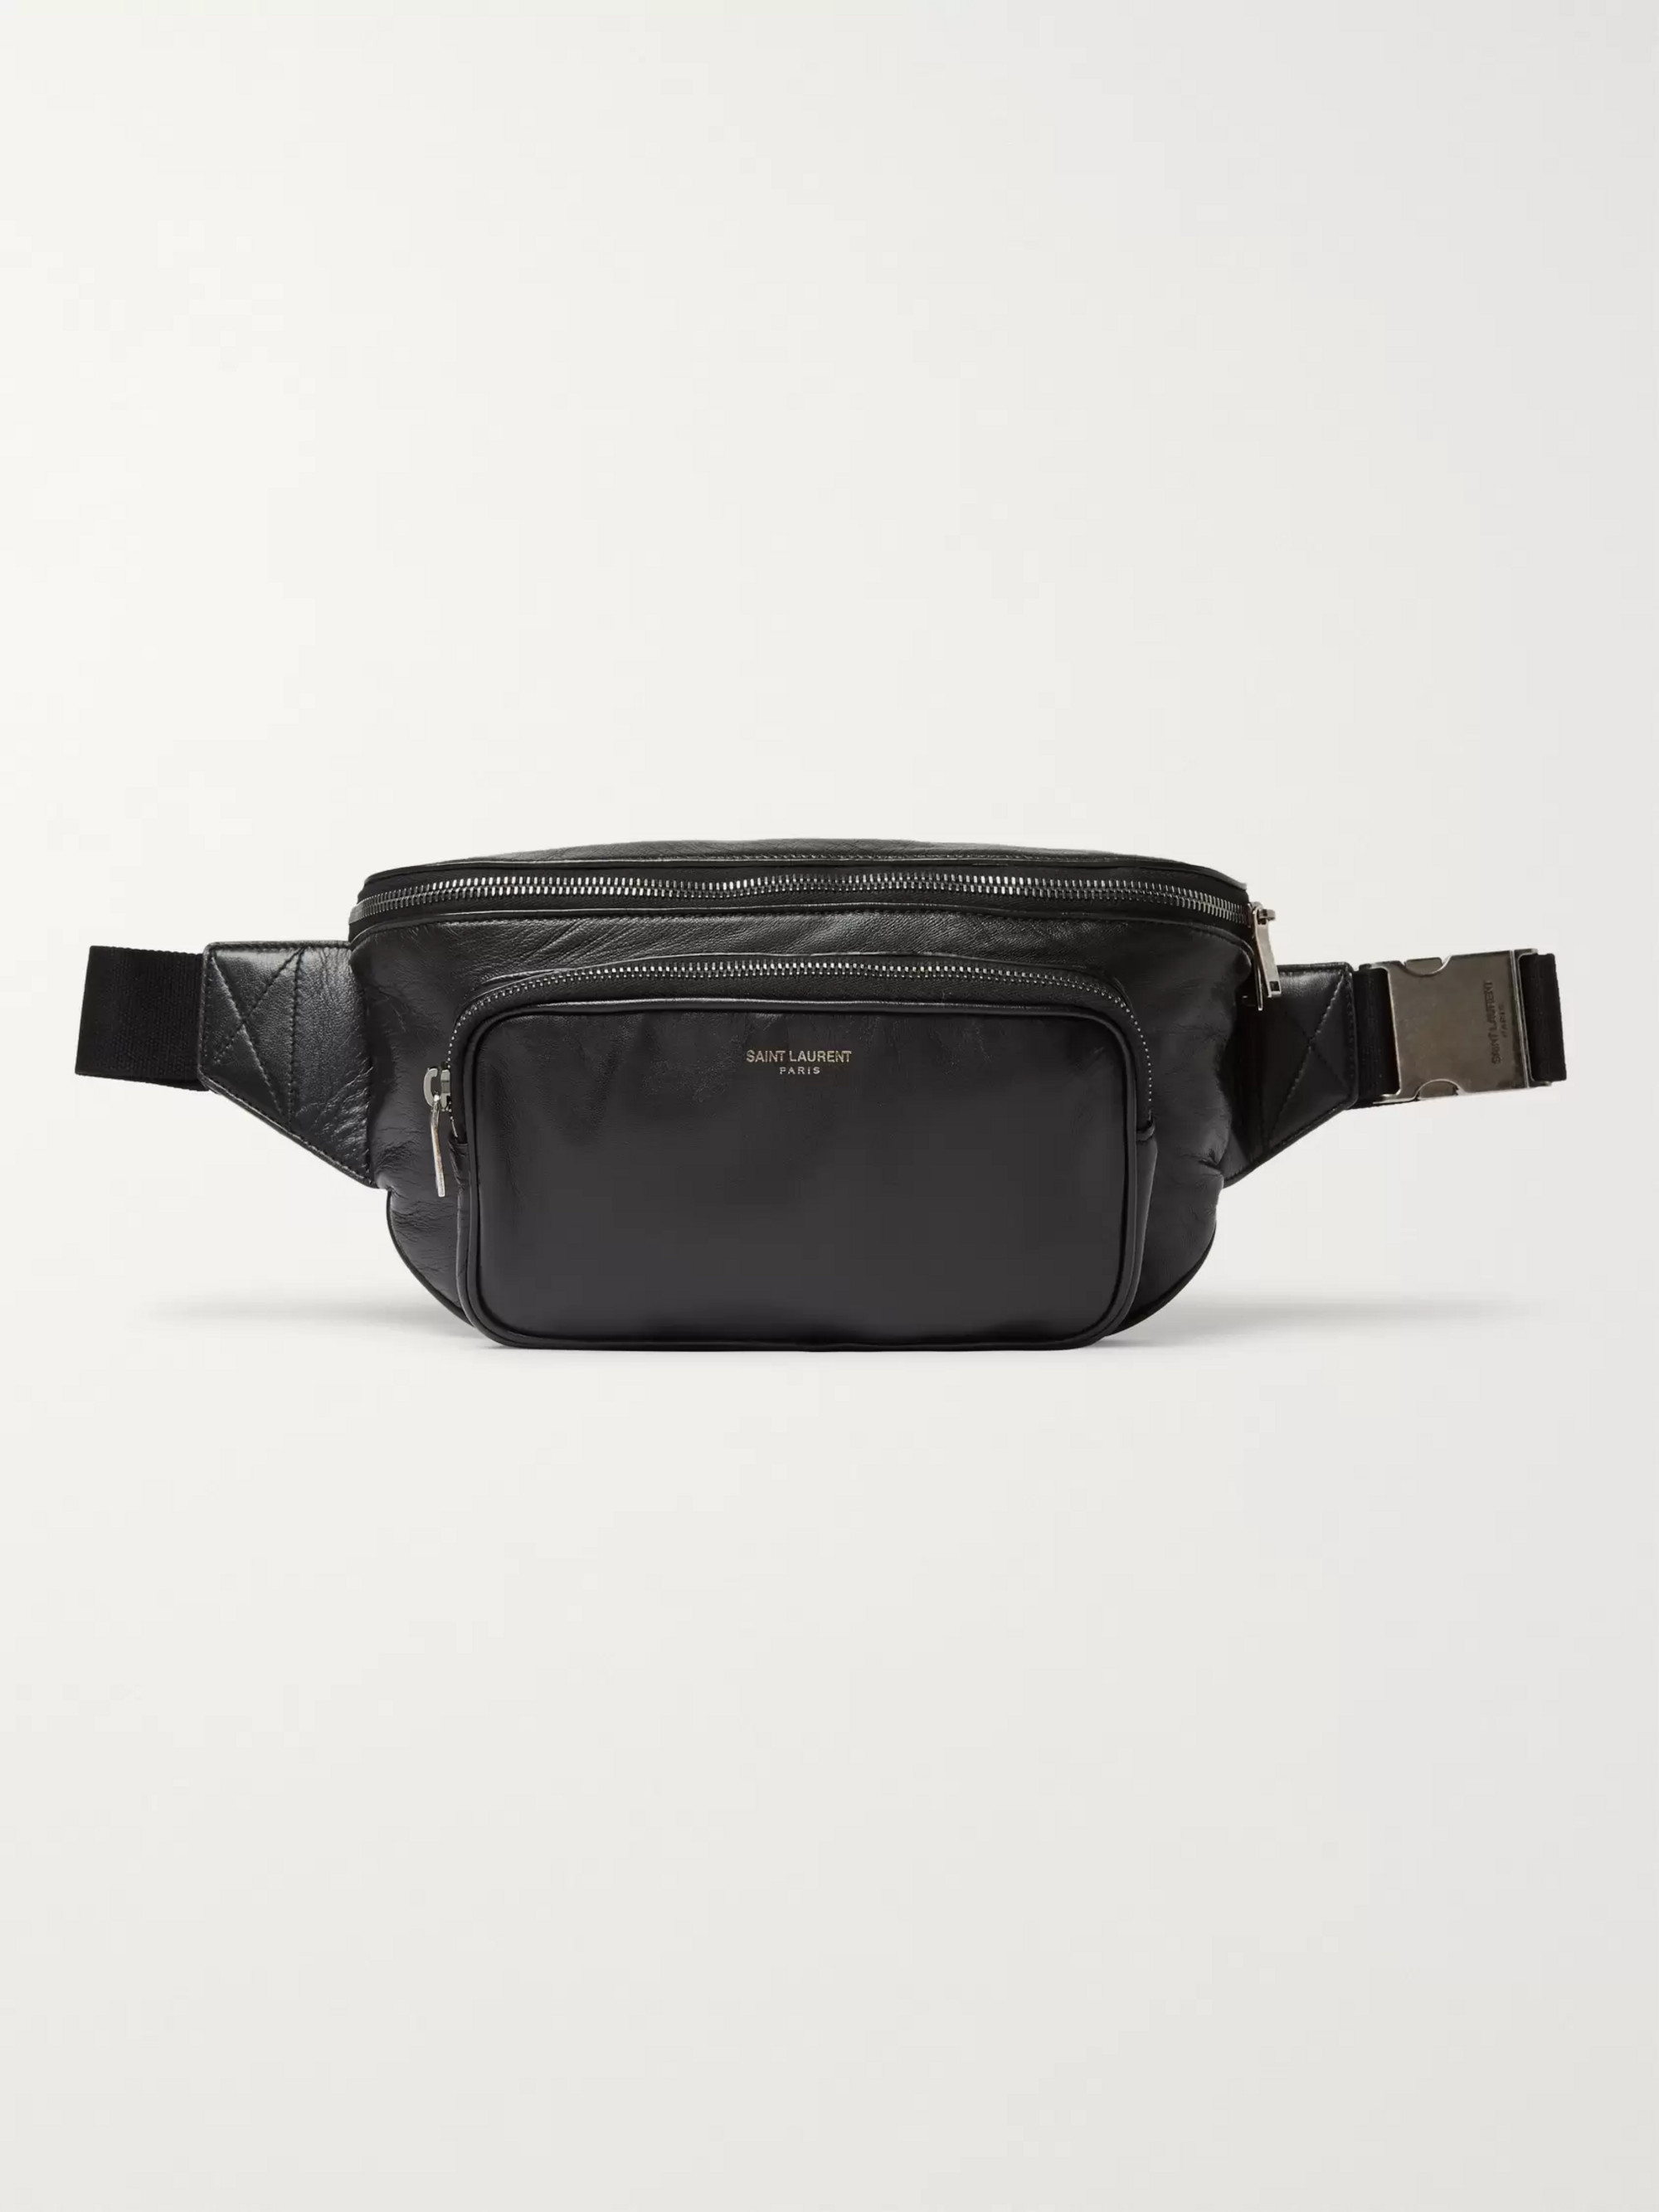 SAINT LAURENT Leather Belt Bag